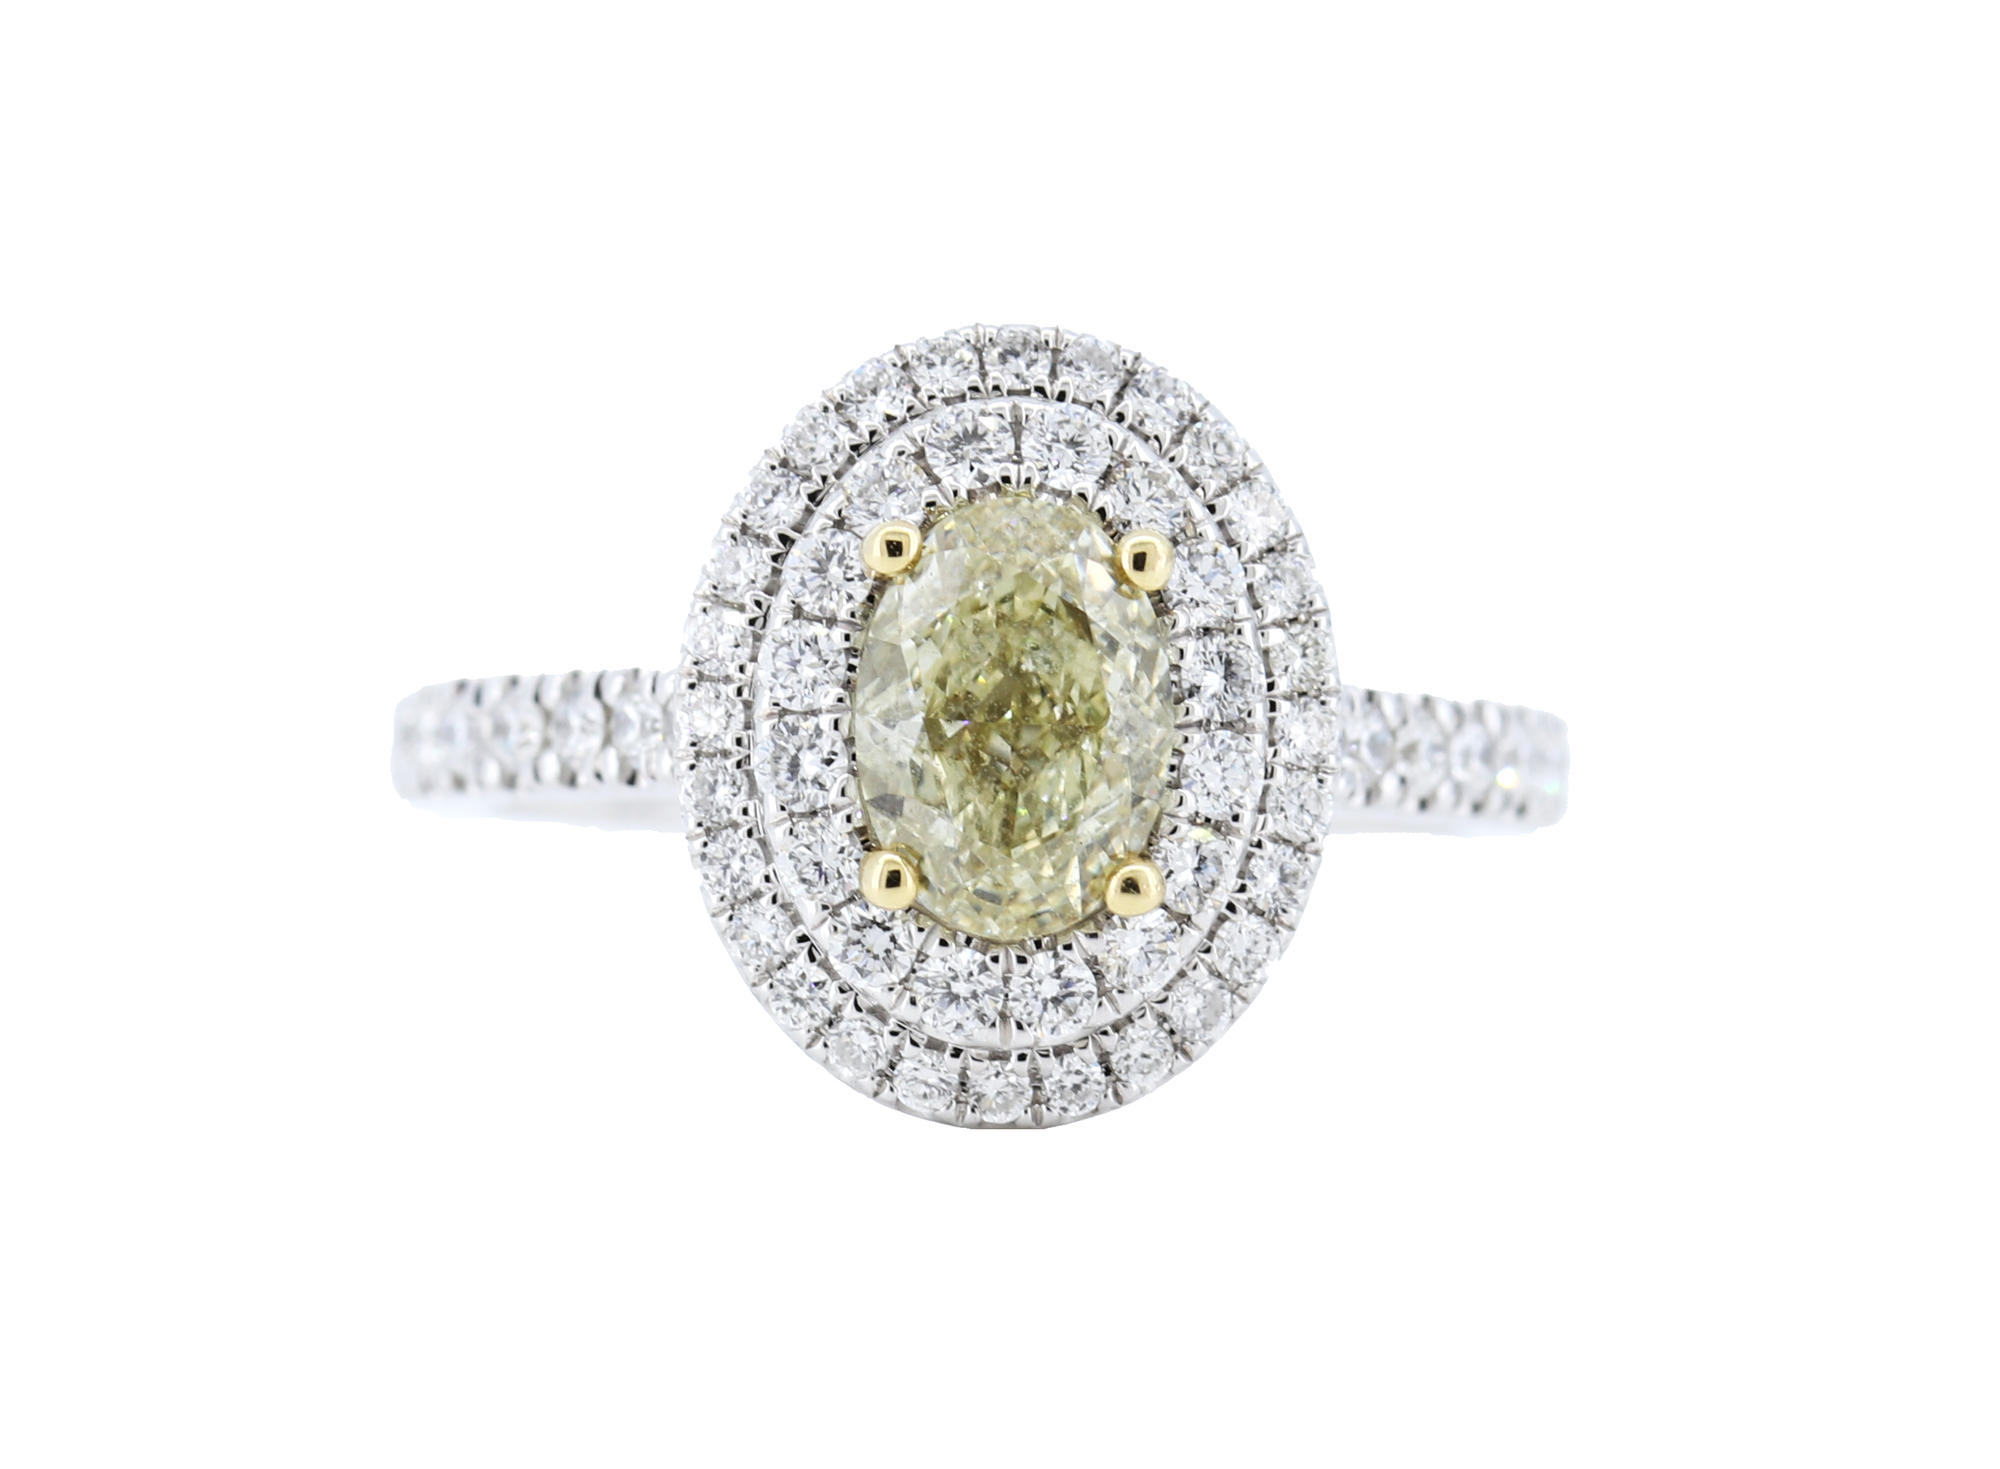 Oval Yellow Diamond Halo Engagement Ring in 18k Gold - GAI Certified